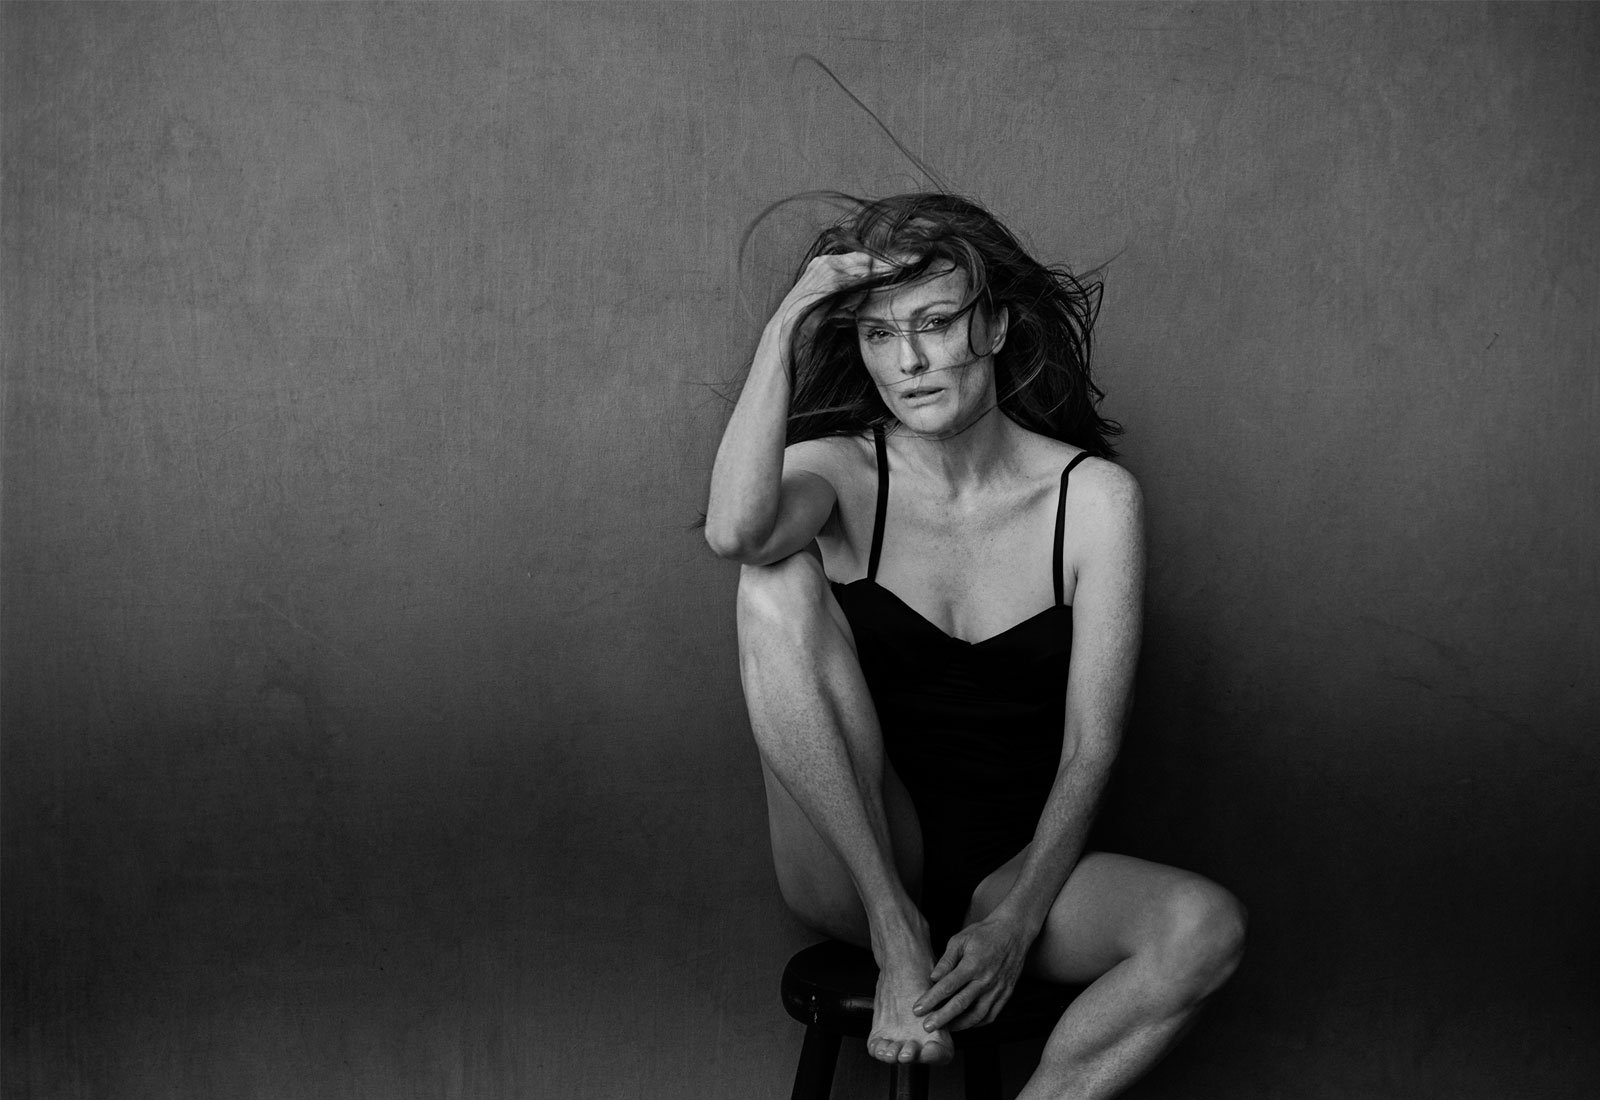 pirelli calender 2017 featuring actress julianne moore photographed by peter lindbergh